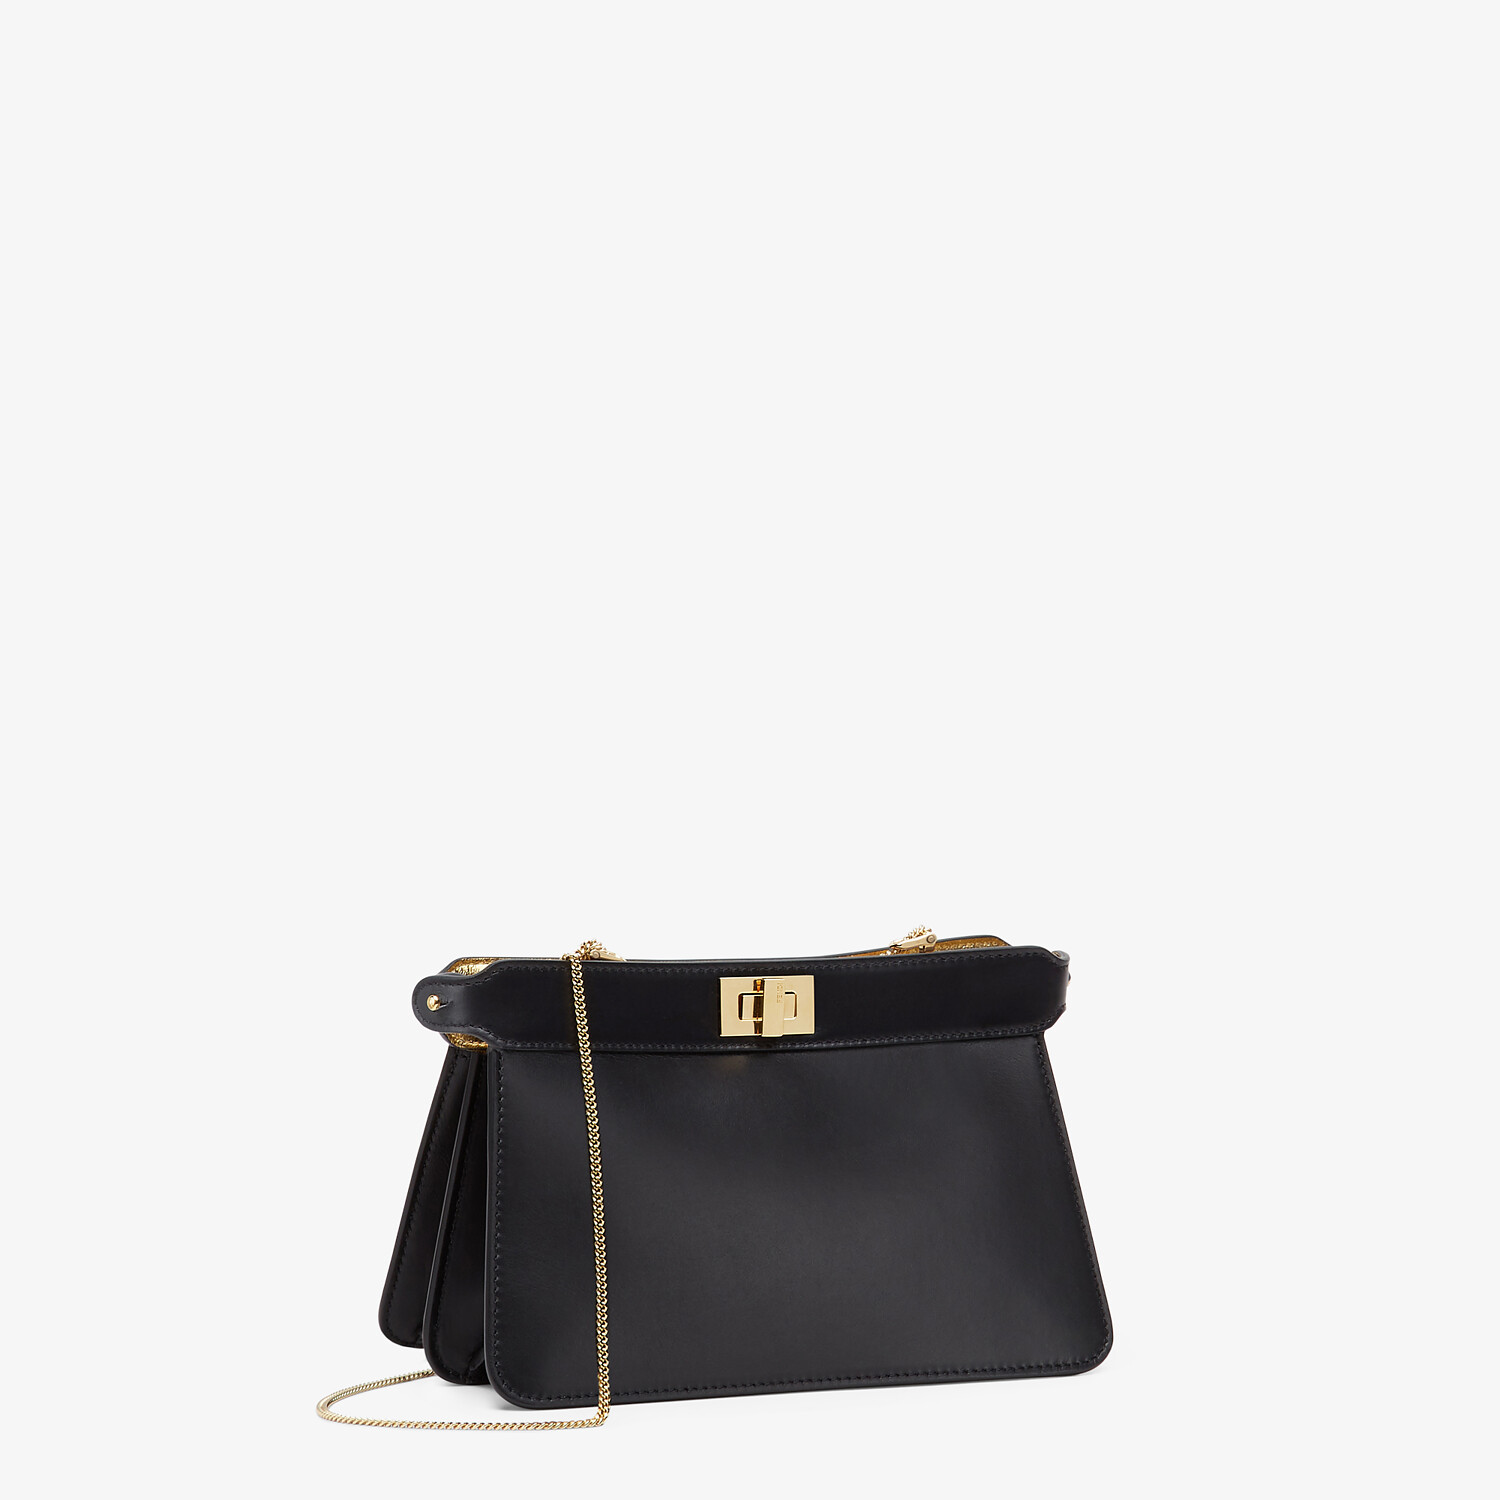 FENDI PEEKABOO I SEE U POCHETTE - Black nappa leather bag - view 2 detail